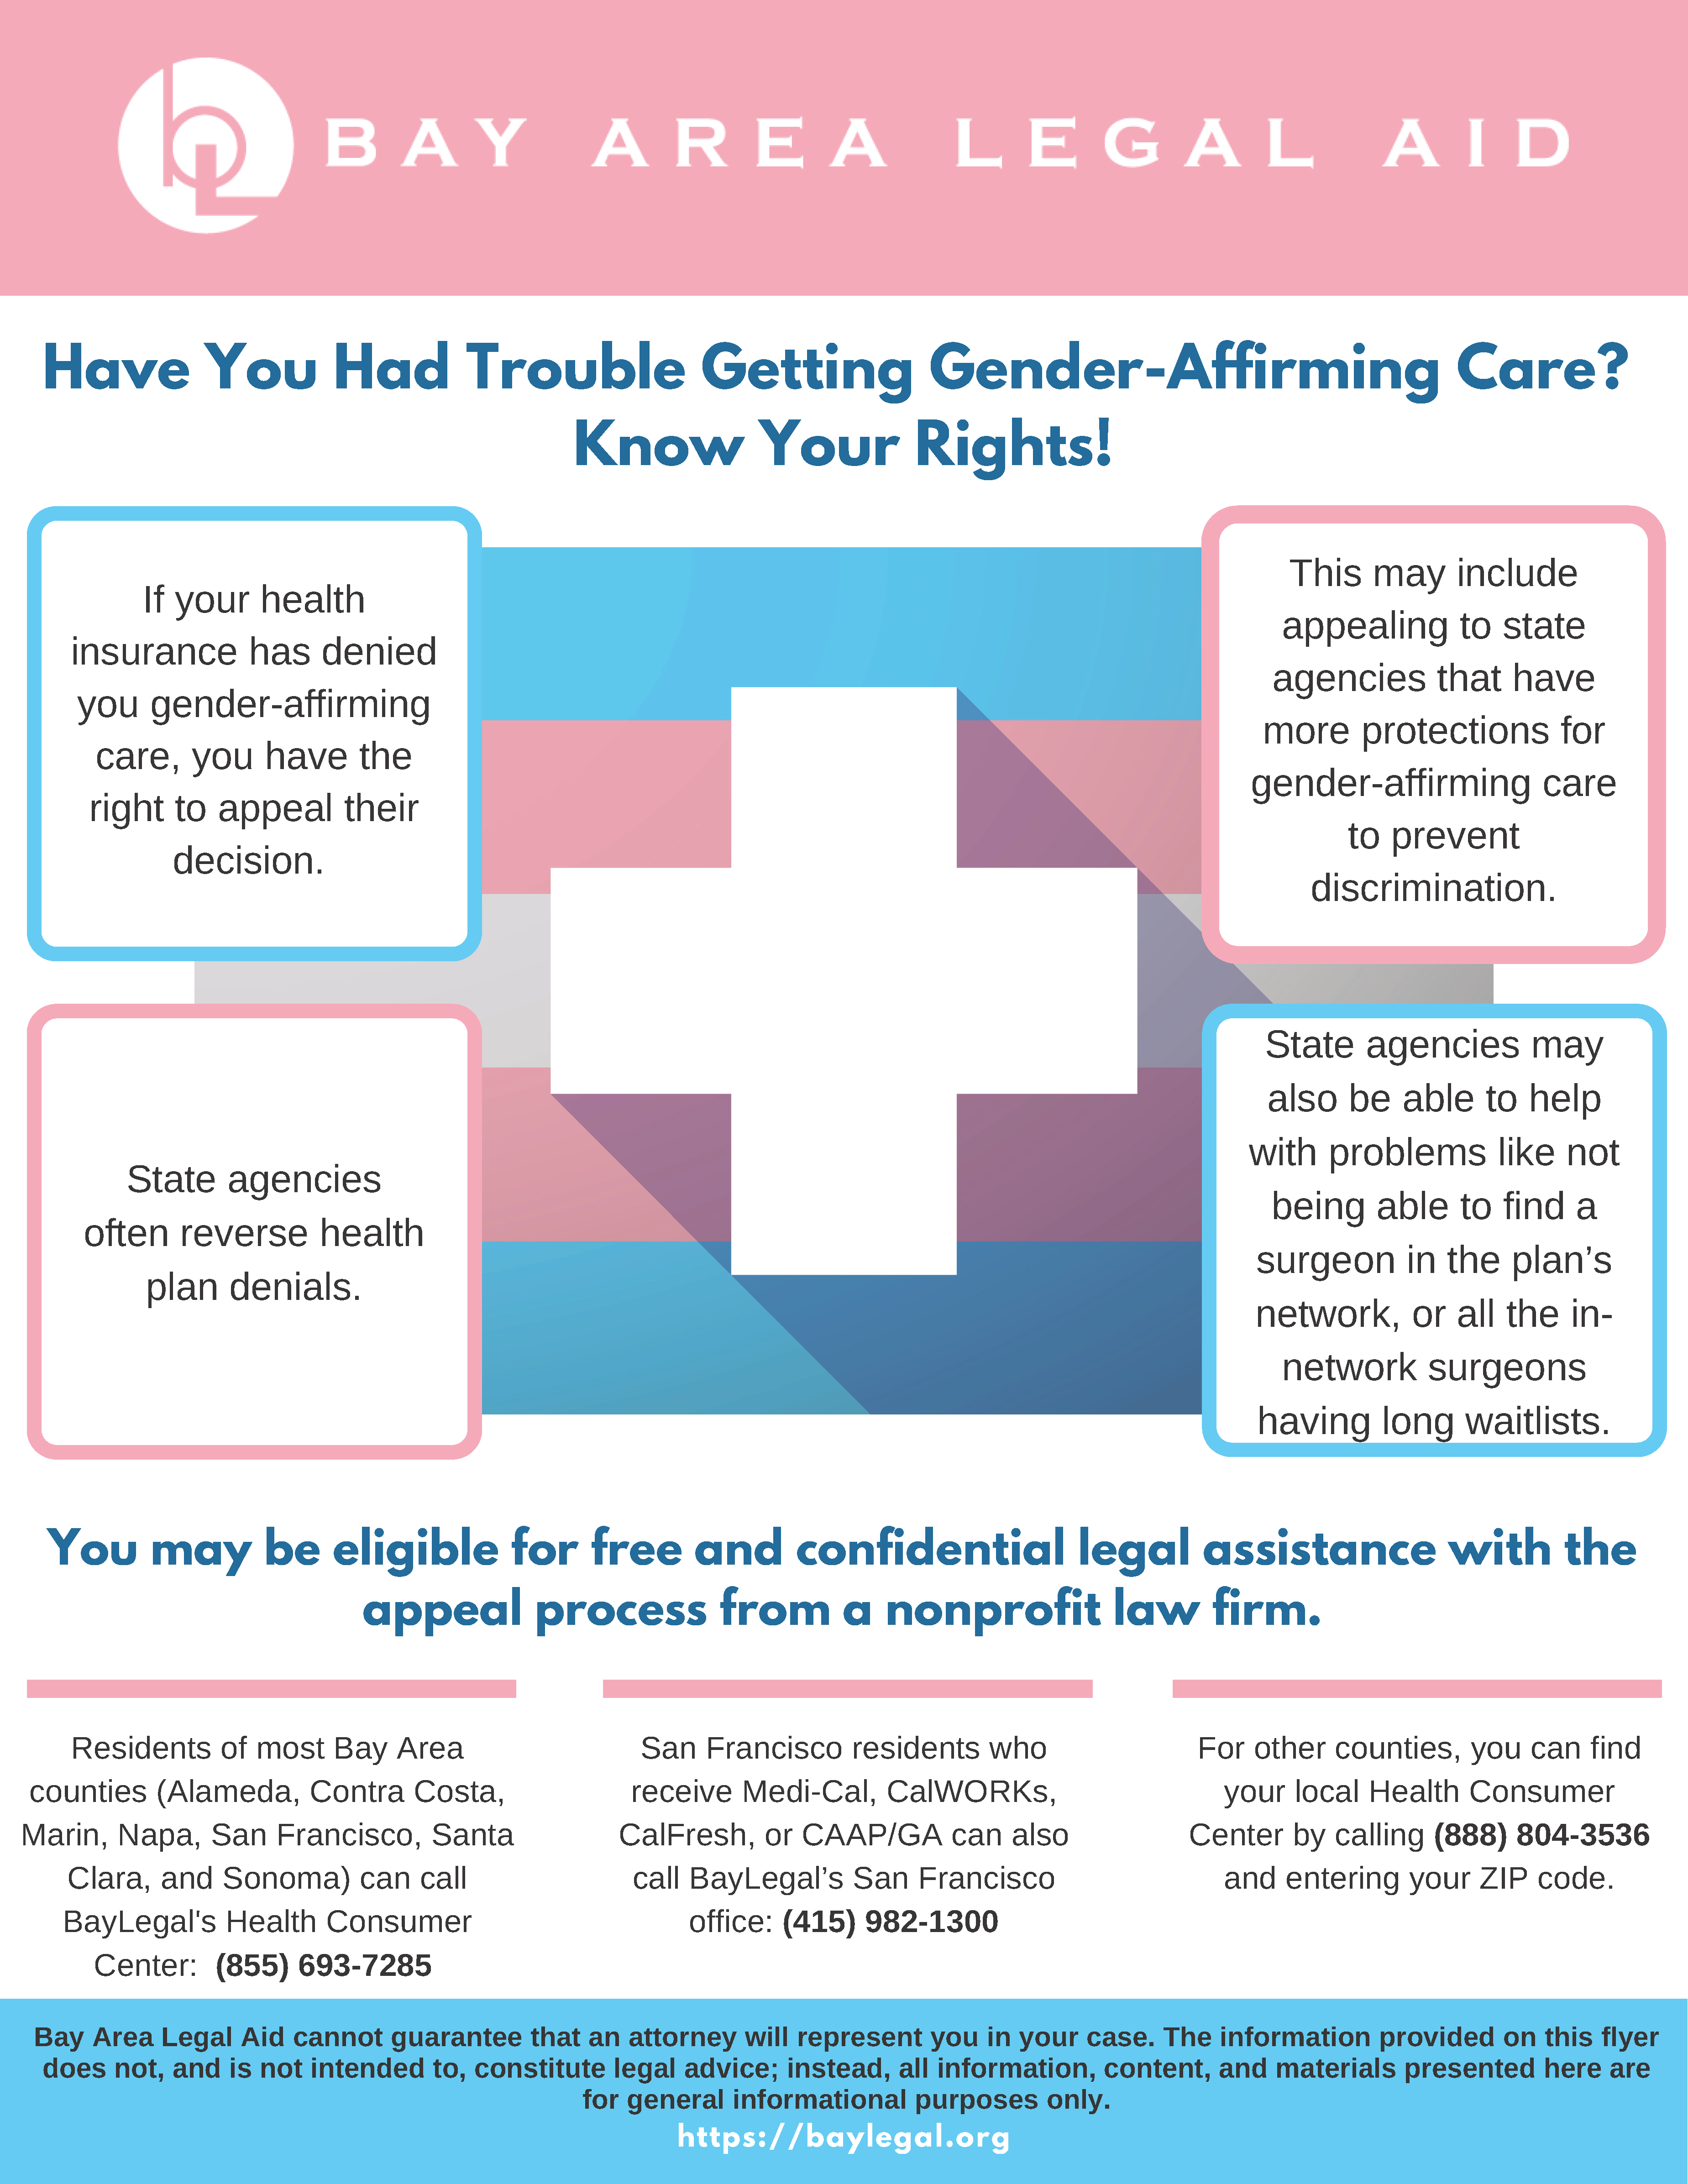 Image of flyer listing legal resources related to gender-affirming healthcare and denials of coverage